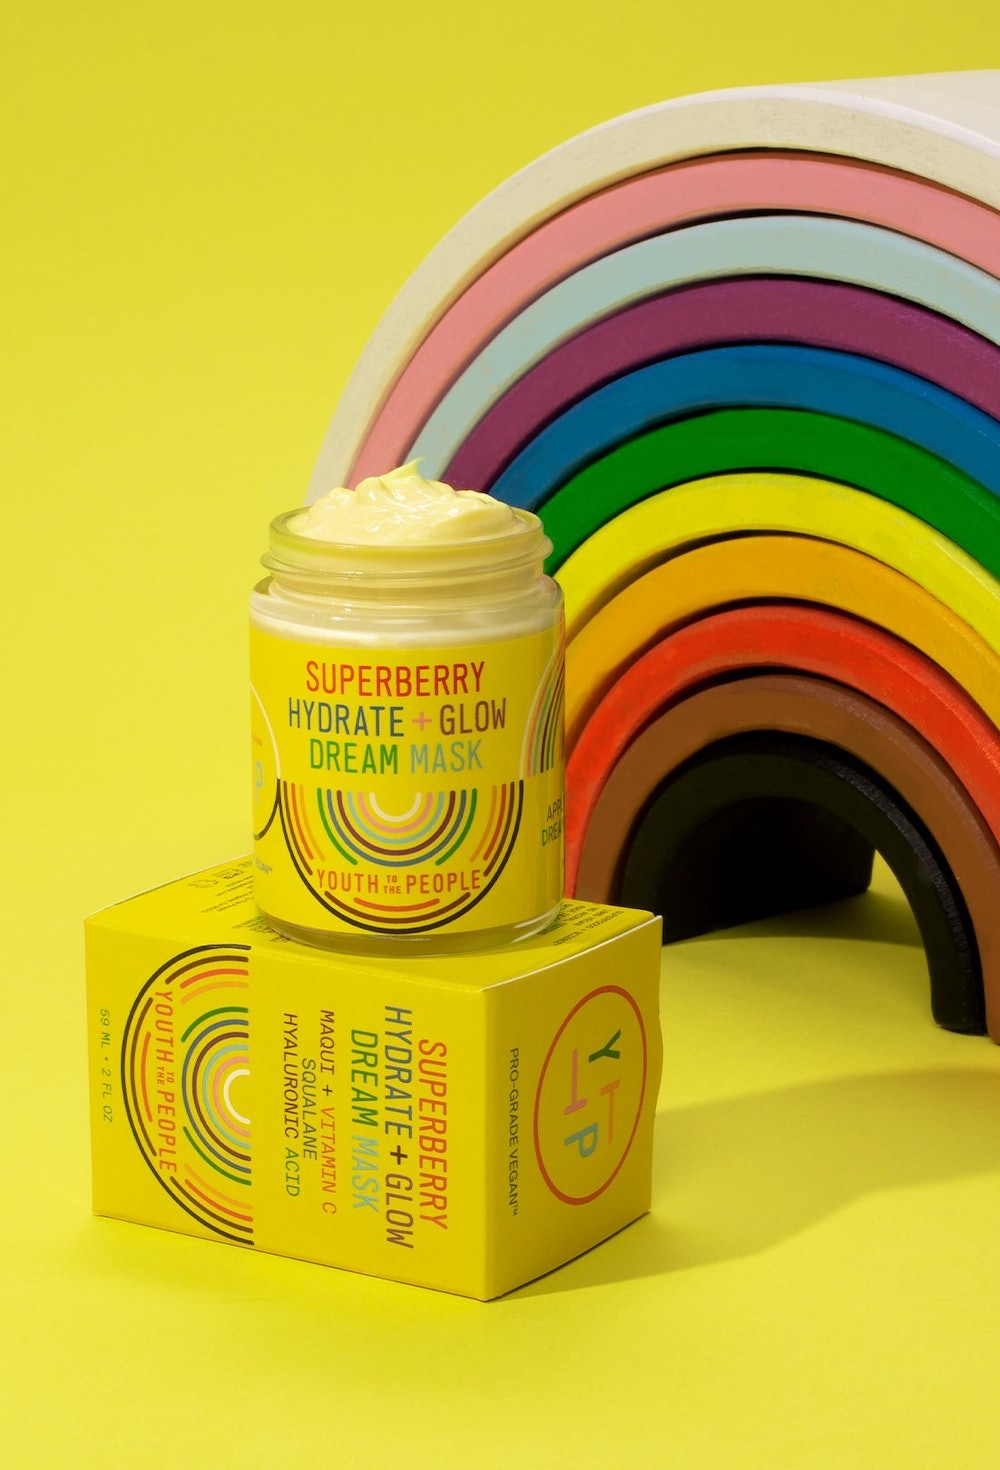 Superberry Hydrate + Glow Pride Edition Dream Mask